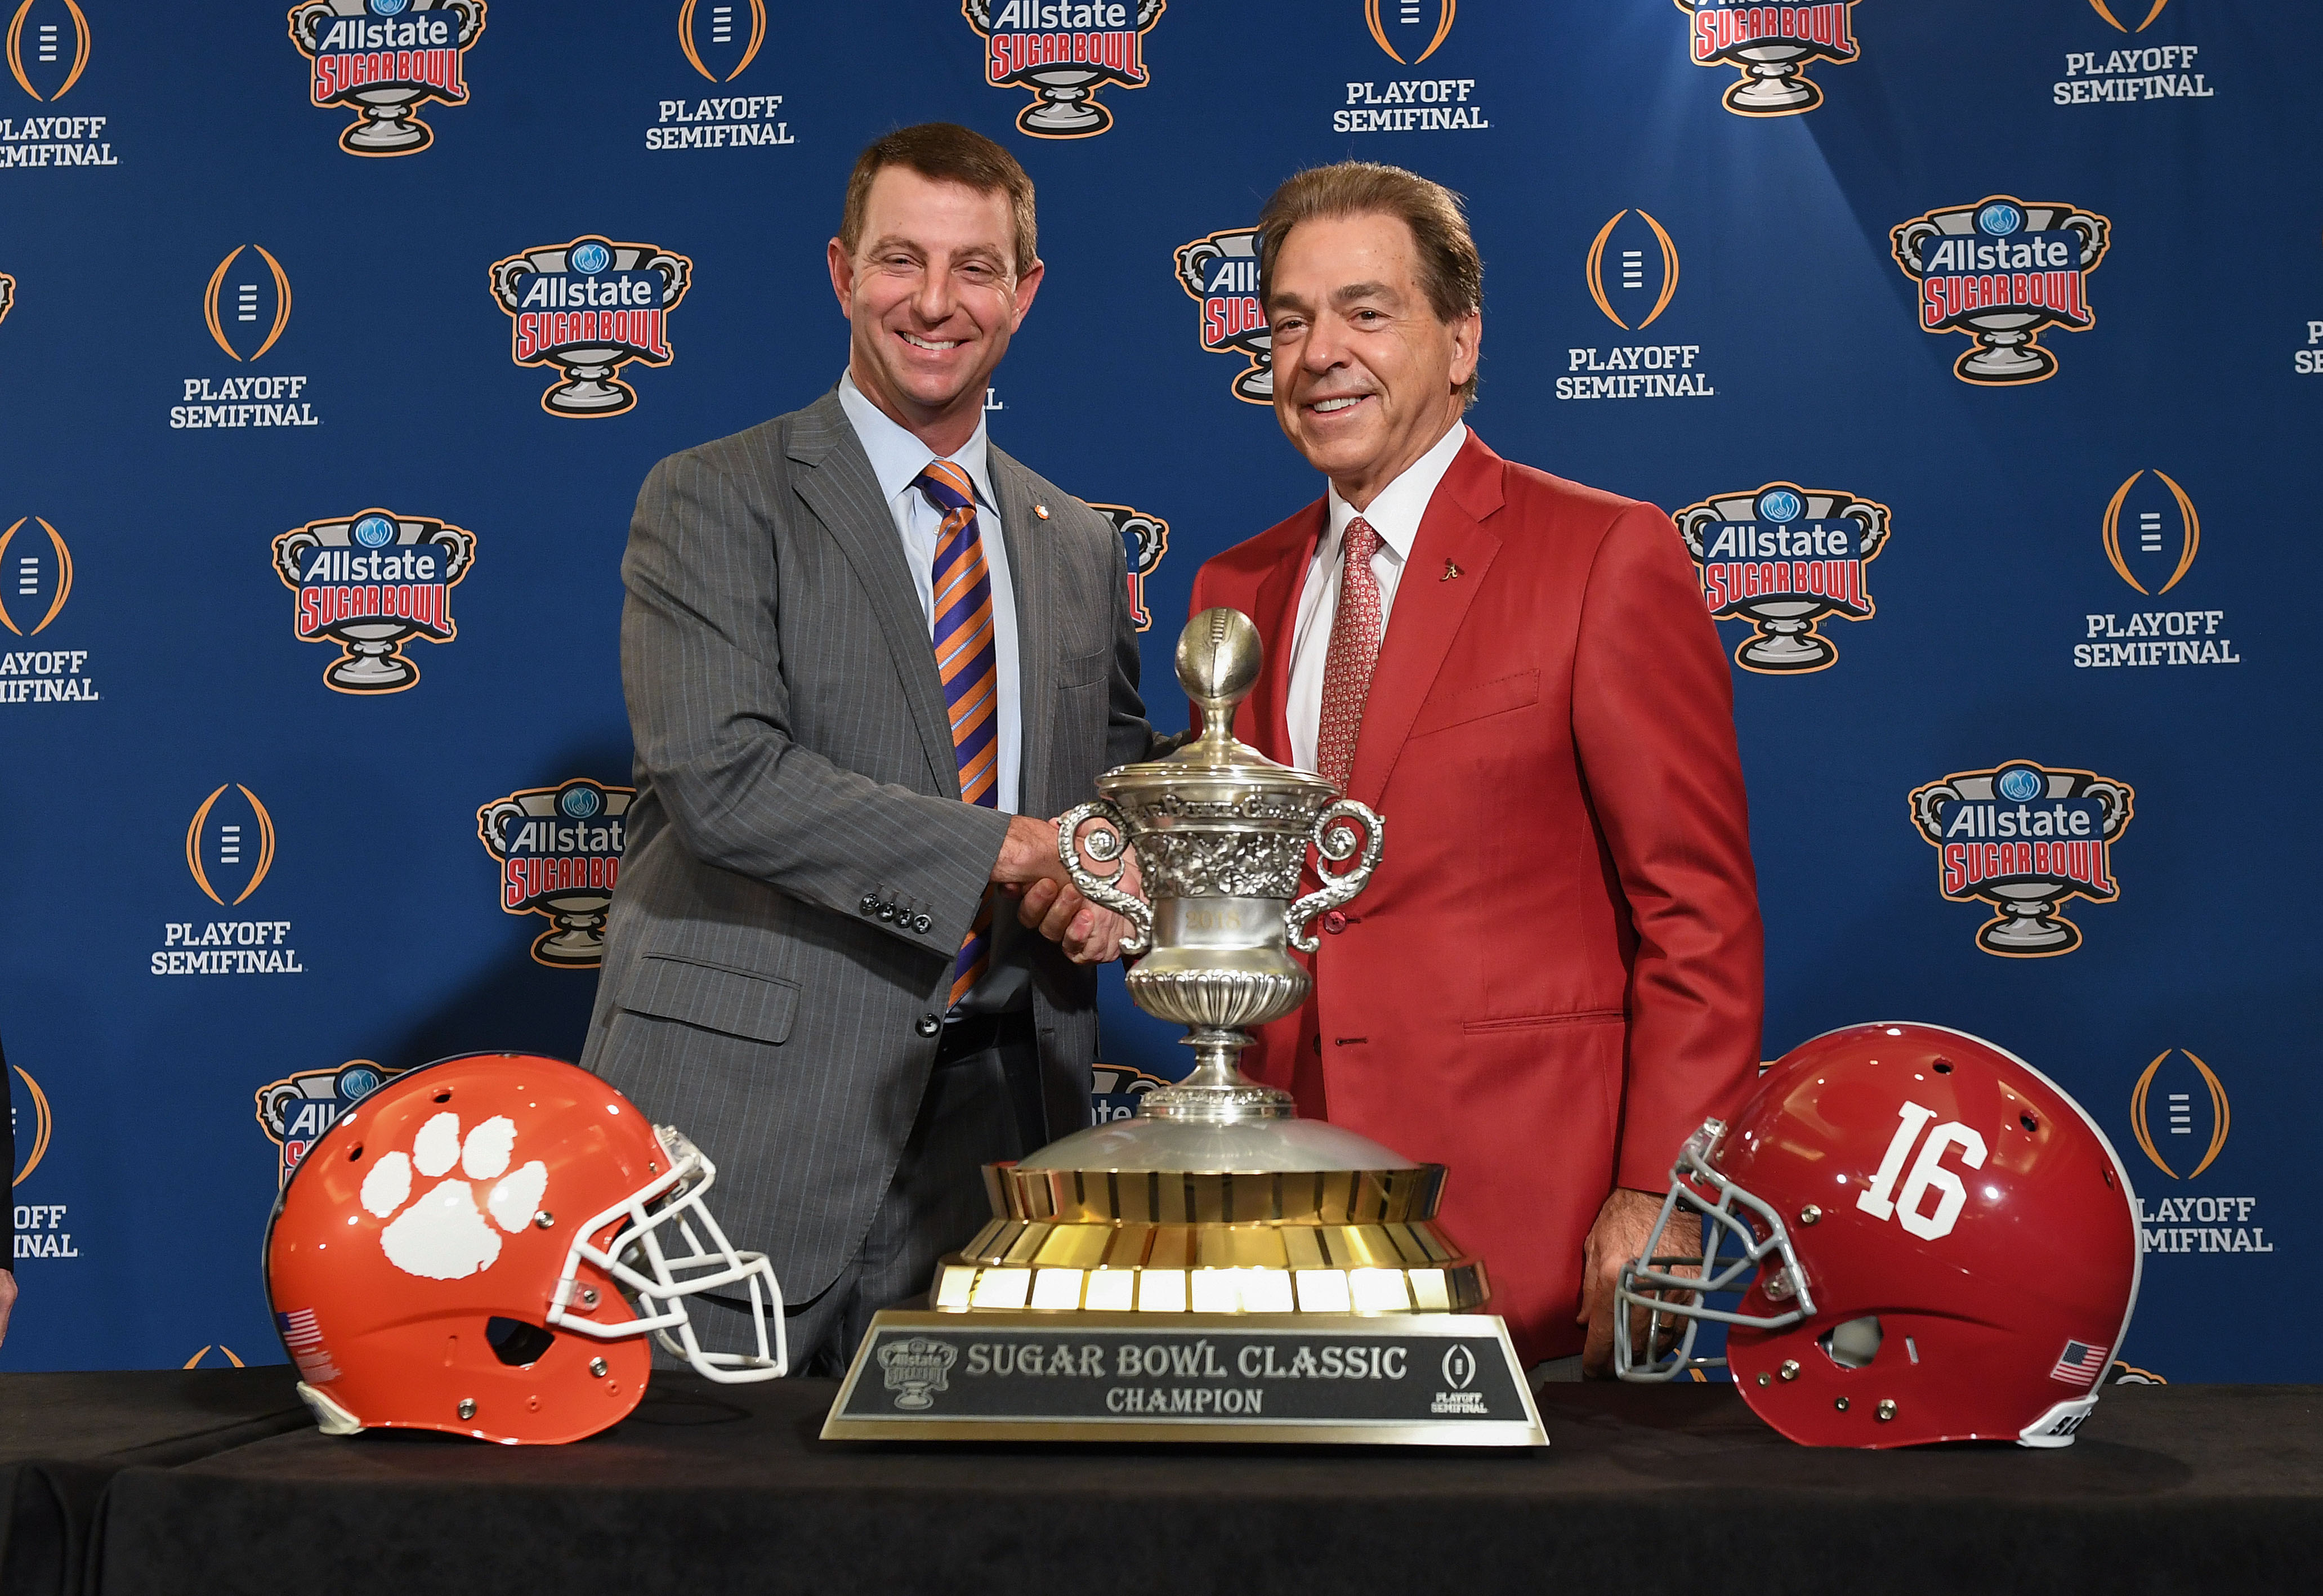 If this happens again next year, let's just have Dabo and Nick fight at midfield.